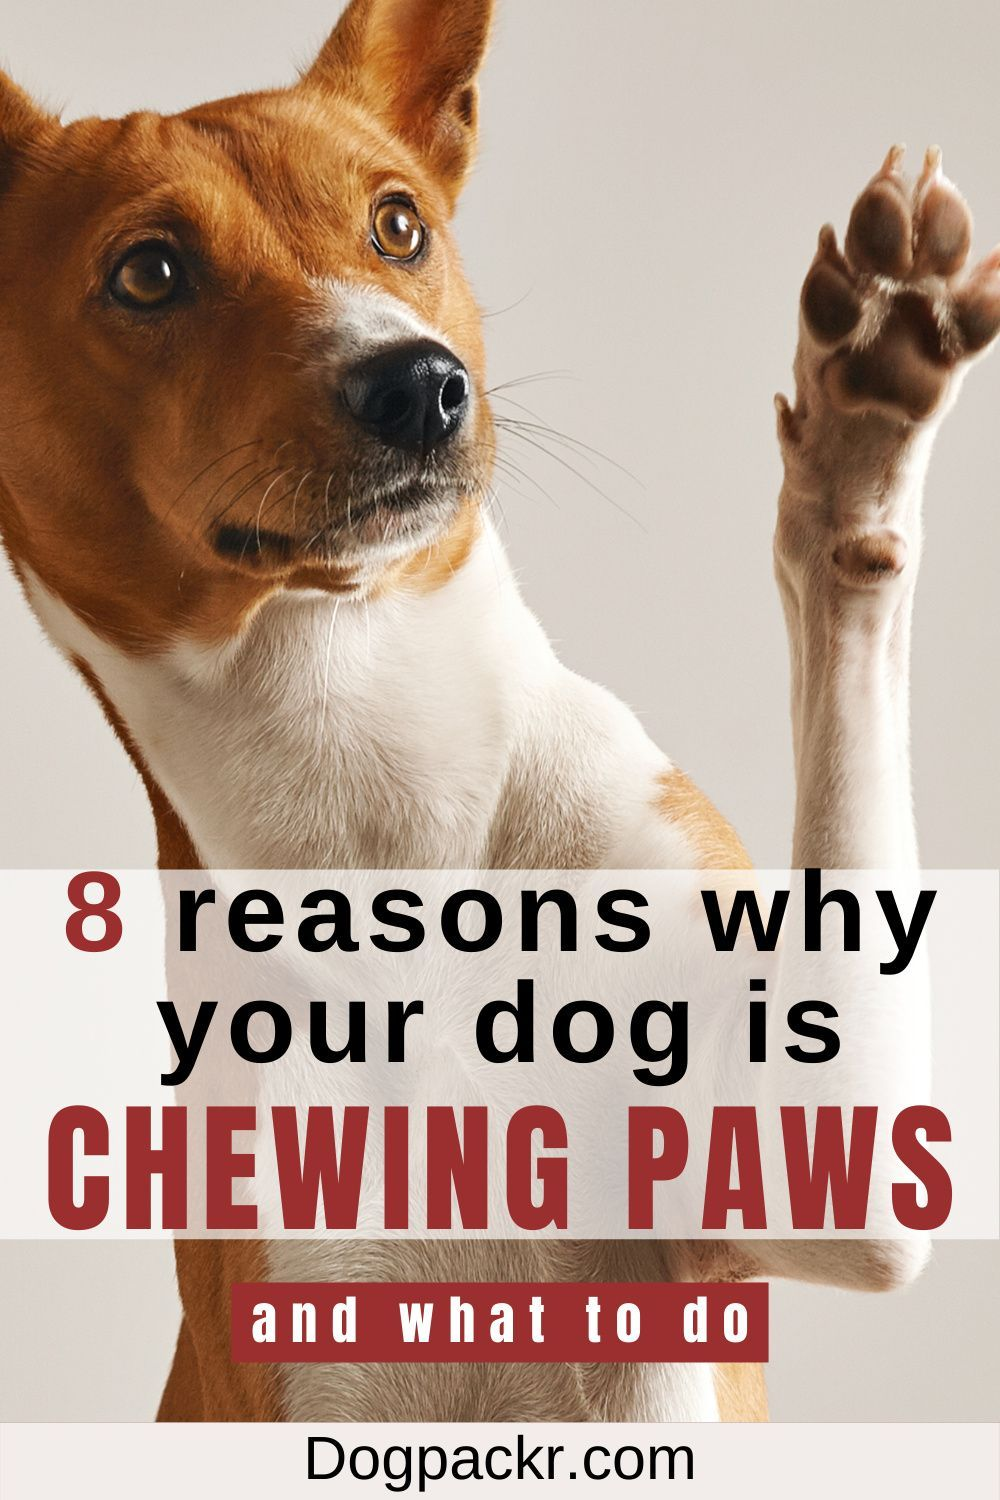 f355a431481ee831c5b7a21be9c066e2 - How Can I Get My Dog To Chew His Food